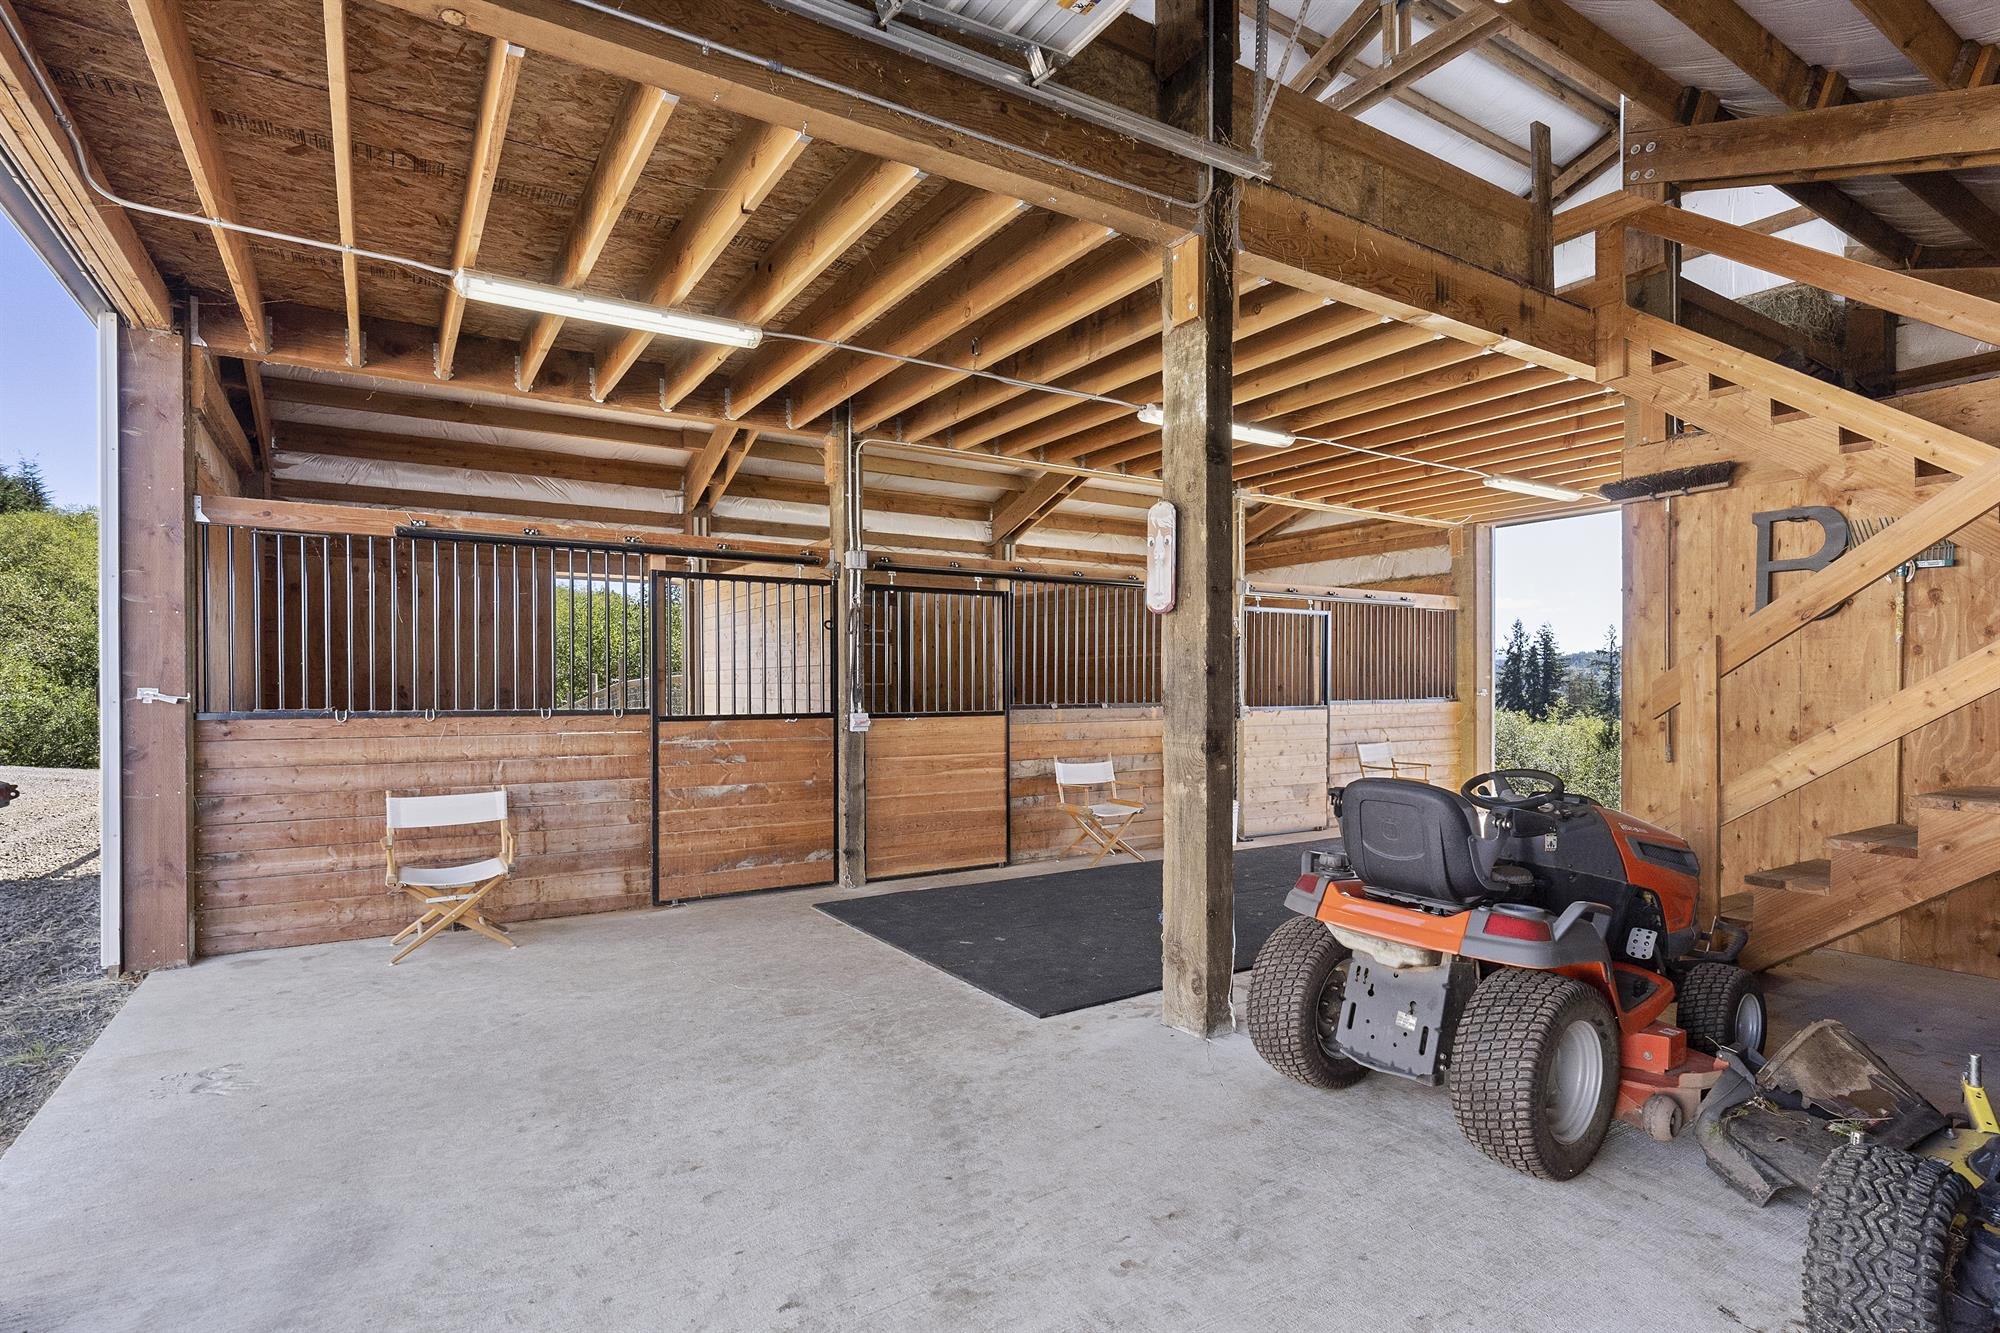 Barn includes three 12' x 12' rubber matted stalls, hot water and a 12-ton hay loft